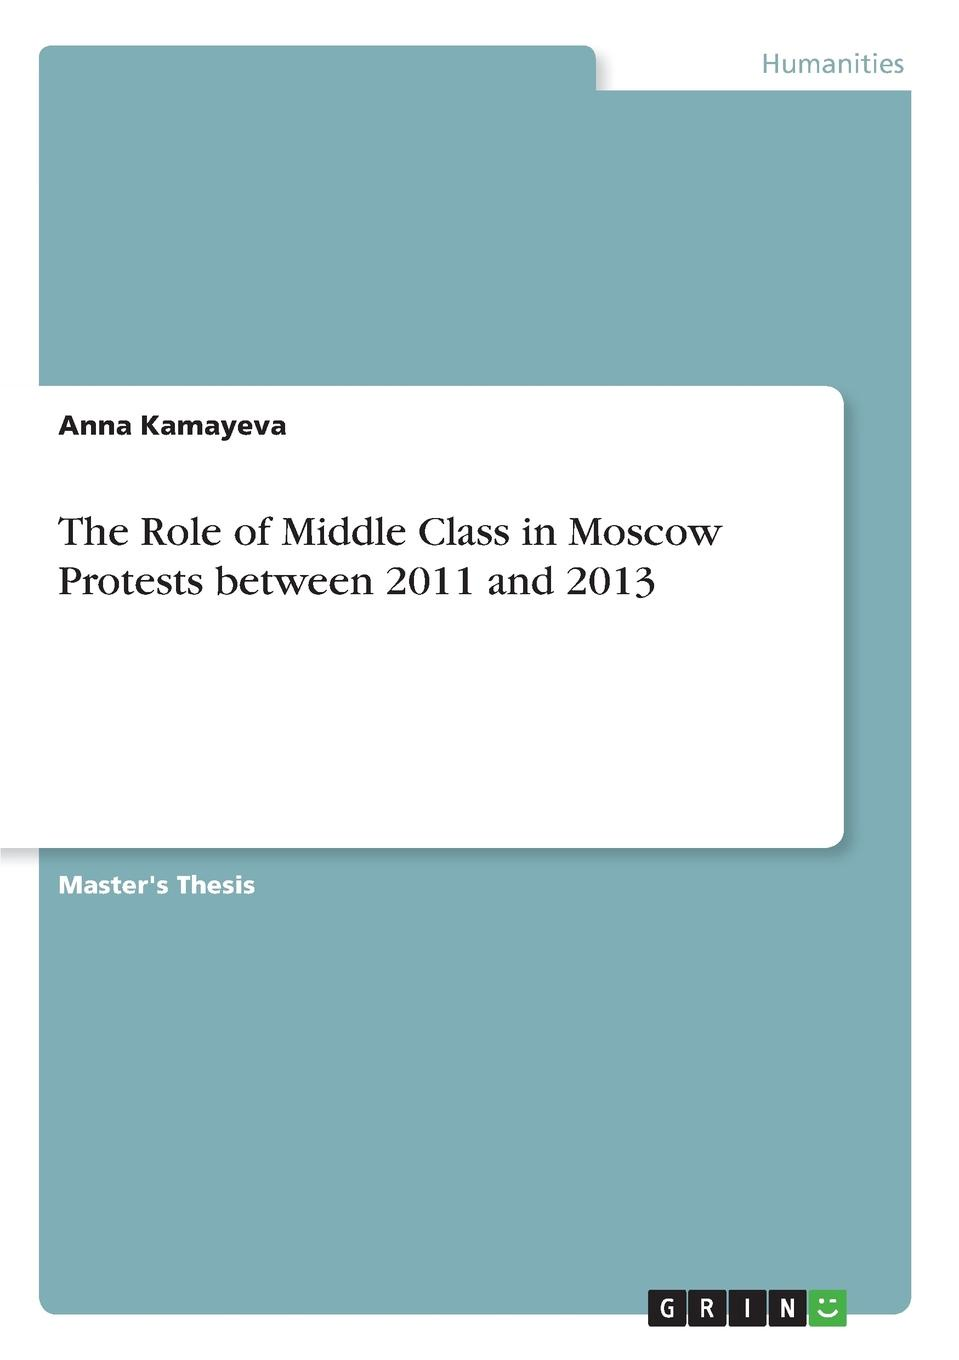 Anna Kamayeva The Role of Middle Class in Moscow Protests between 2011 and 2013 the middle class as factor of stability of the russian society